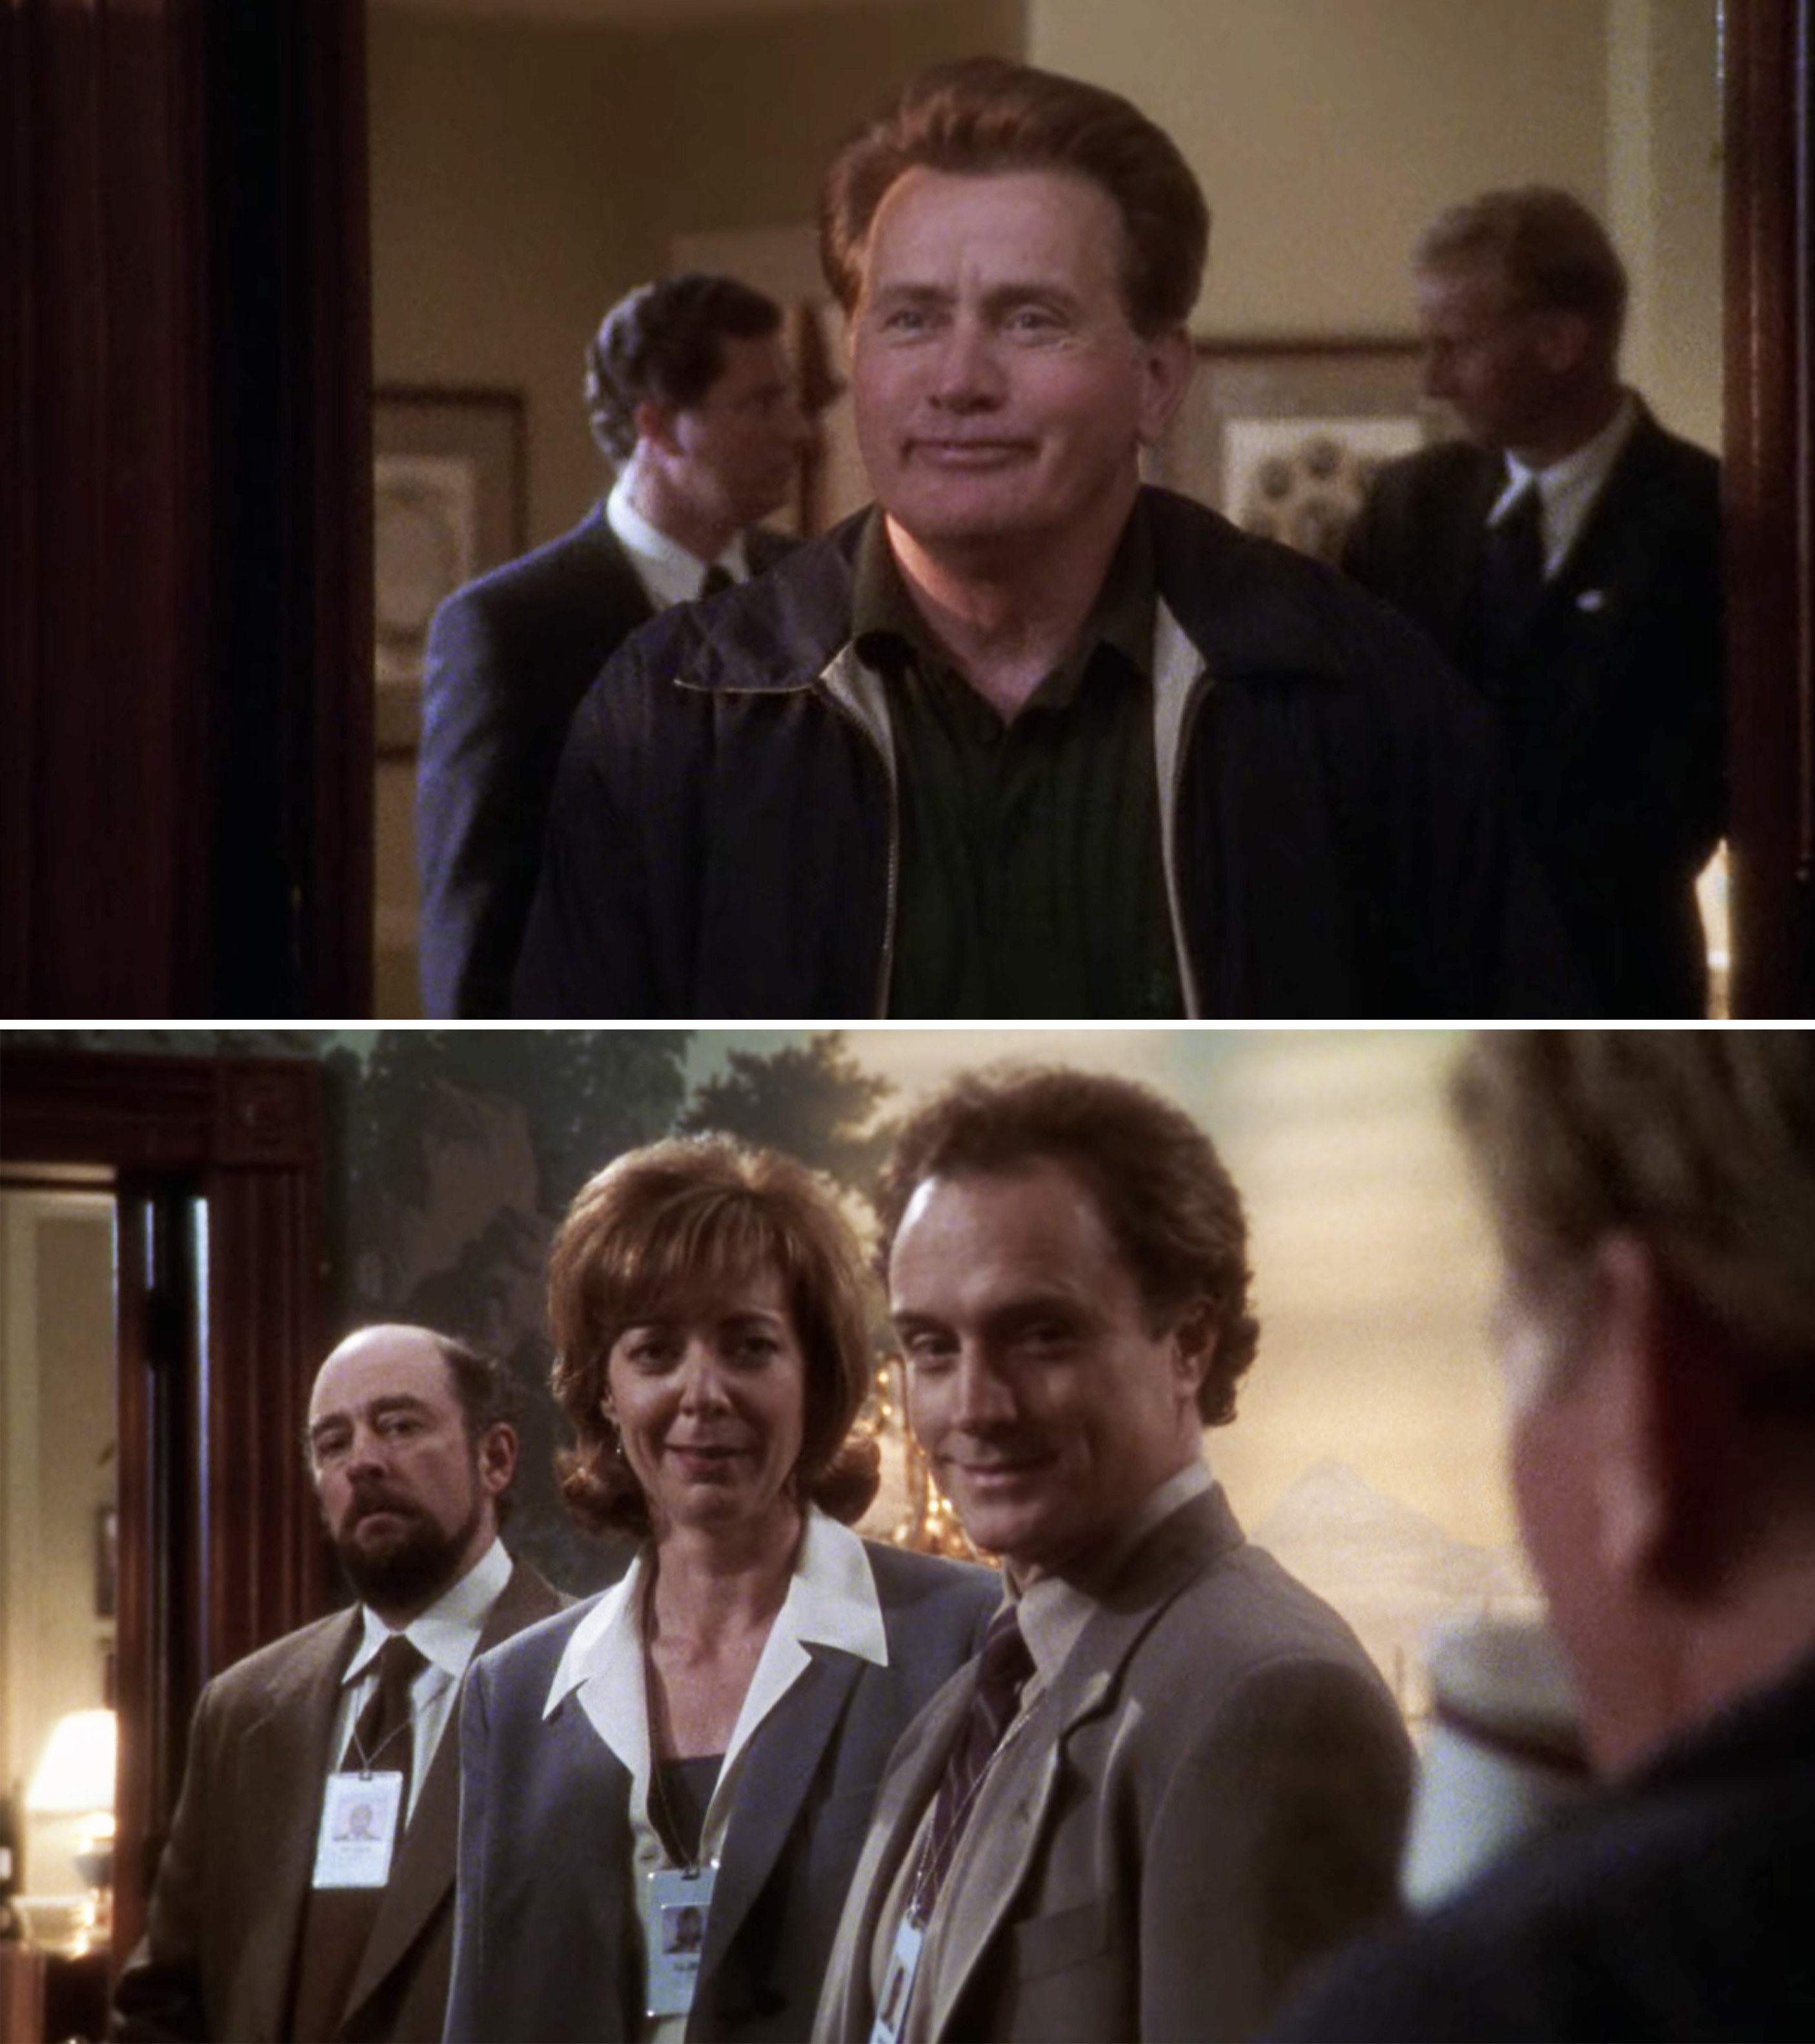 President Bartlet arriving and talking to CJ, Josh, and Toby